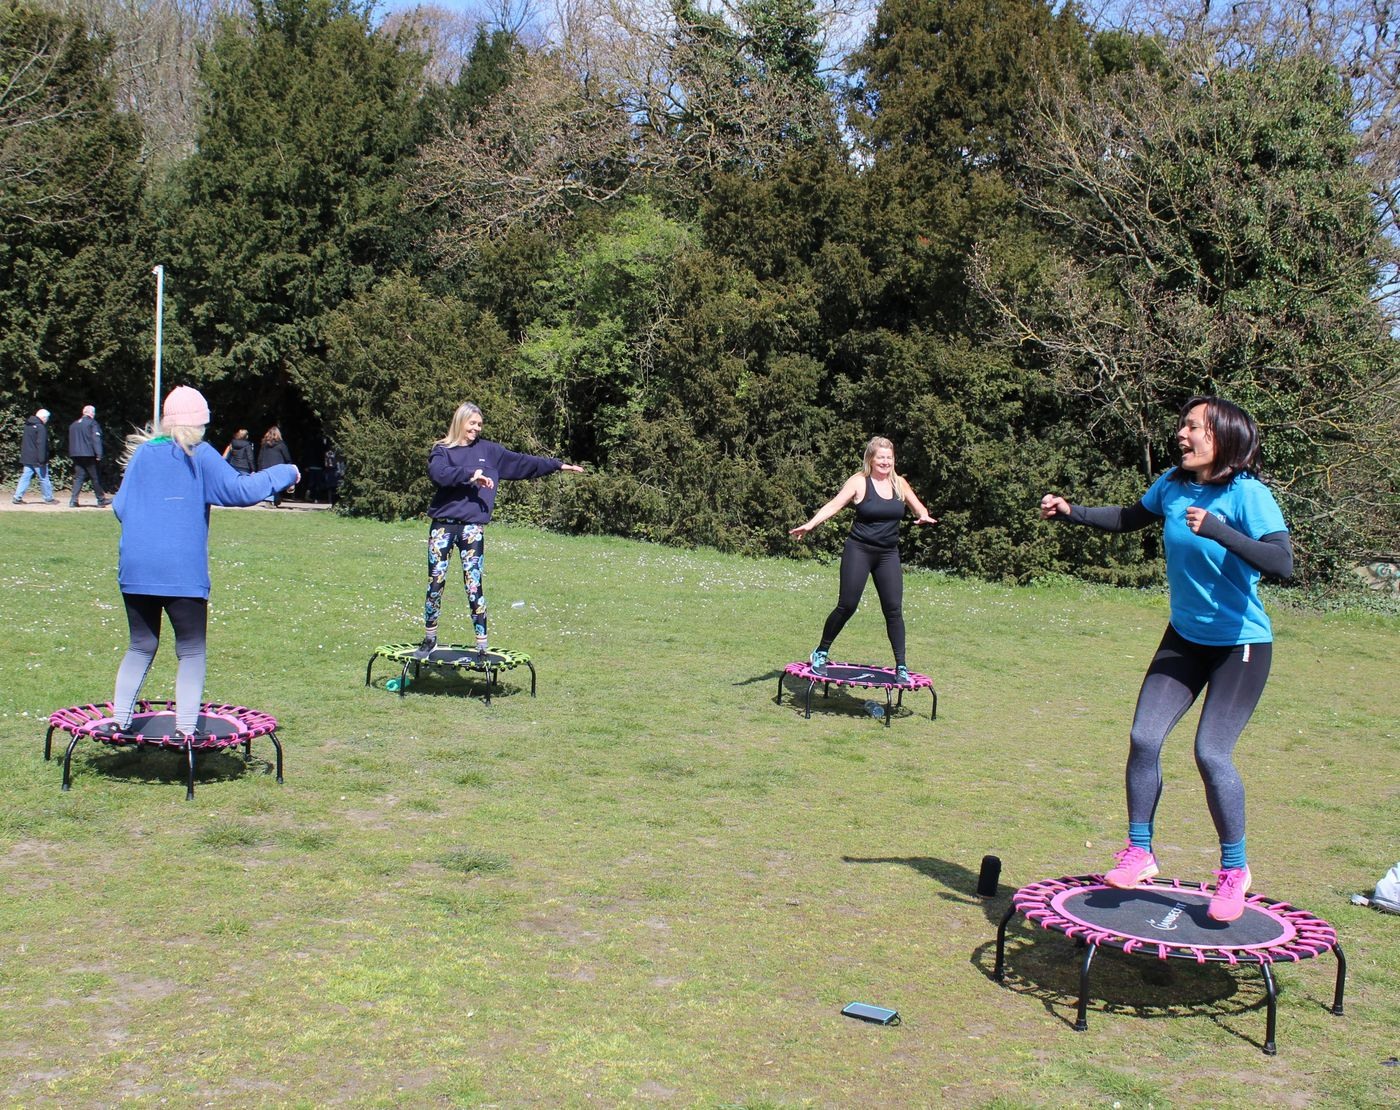 Happy Hump Day! We're nearly there, it's nearly Bounce Day again! 😂🤸♀️ Just 2 spaces left for this Sunday's class https://bua.fit/classes/V2XdeG6bH6gj